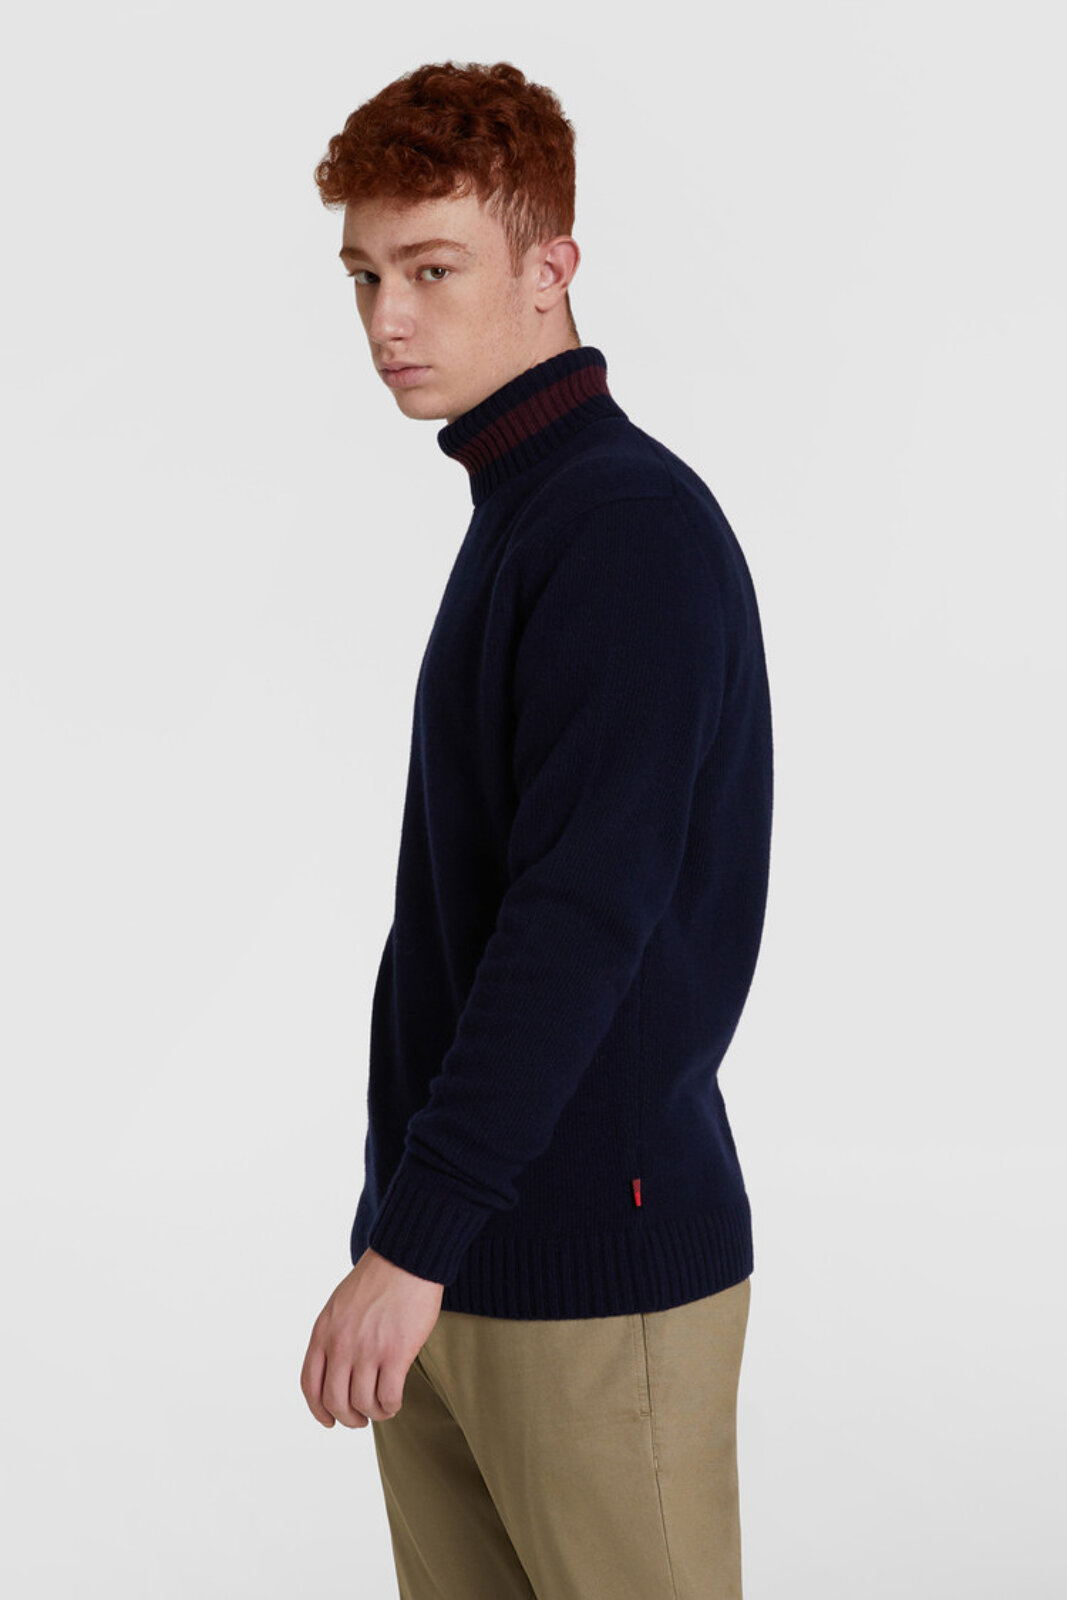 Color Block Crewneck Wool Sweater - Woolrich